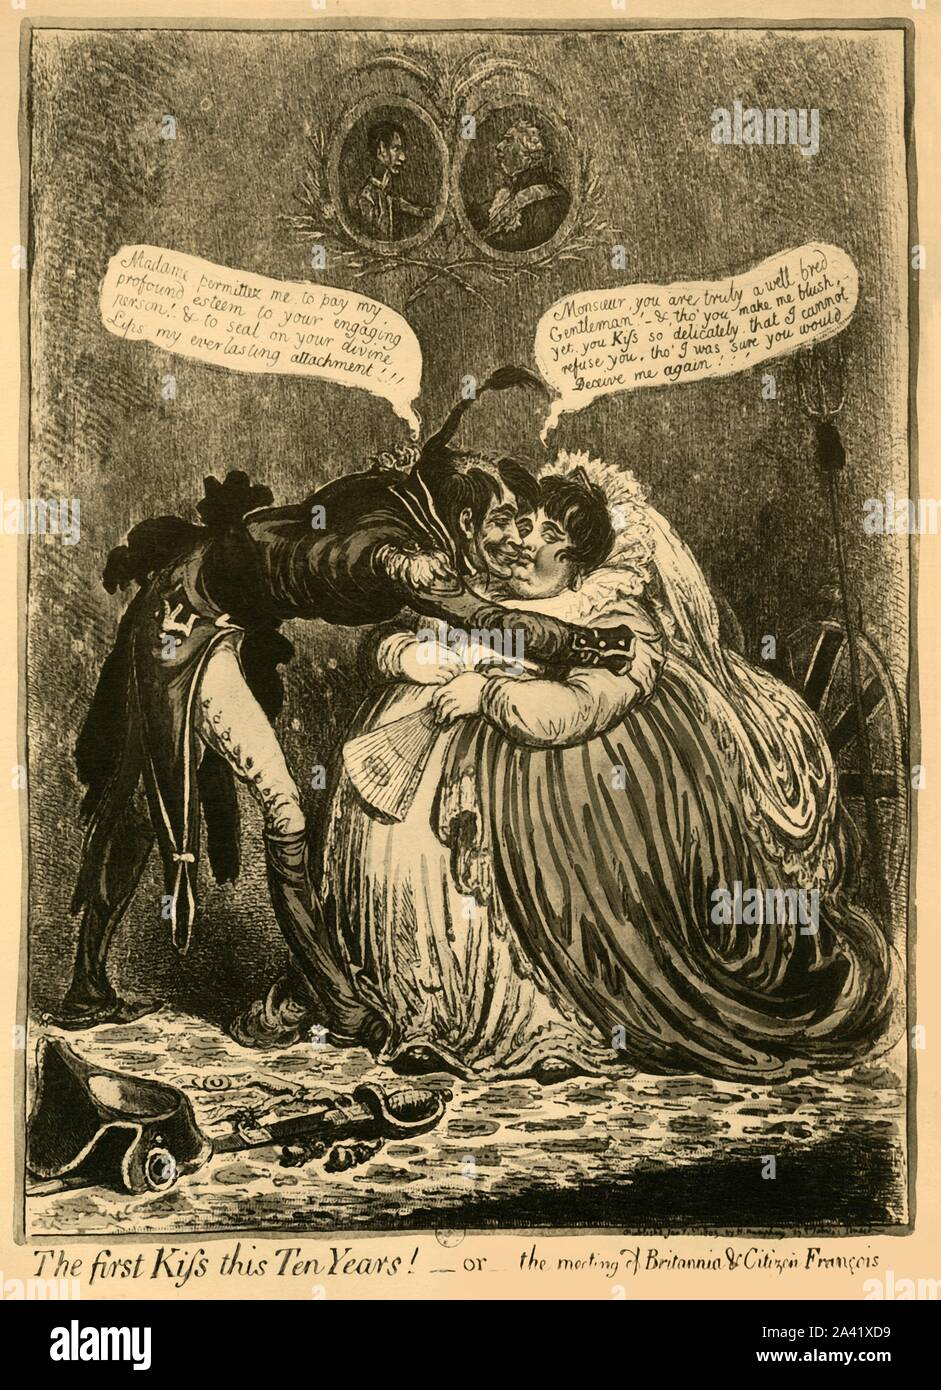 'The first Kiss this Ten Years! - or - the meeting of Britannia & Citizen François', 1803, (1921). Citizen François (representing France): 'Madame, permittez me, to pay my profound esteem to your engaging person! & to seal on your divine Lips my everlasting attachment!!!'. Britannia replies: 'Monsieur, you are truly a well-bred Gentleman! - & tho' you make me blush, yet, you Kiss so delicately, that I cannot refuse you; tho' I was sure you would Deceive me again!!!' Above them are portraits of George III and Napoleon, facing each other. After an engraving by James Gillray Stock Photo